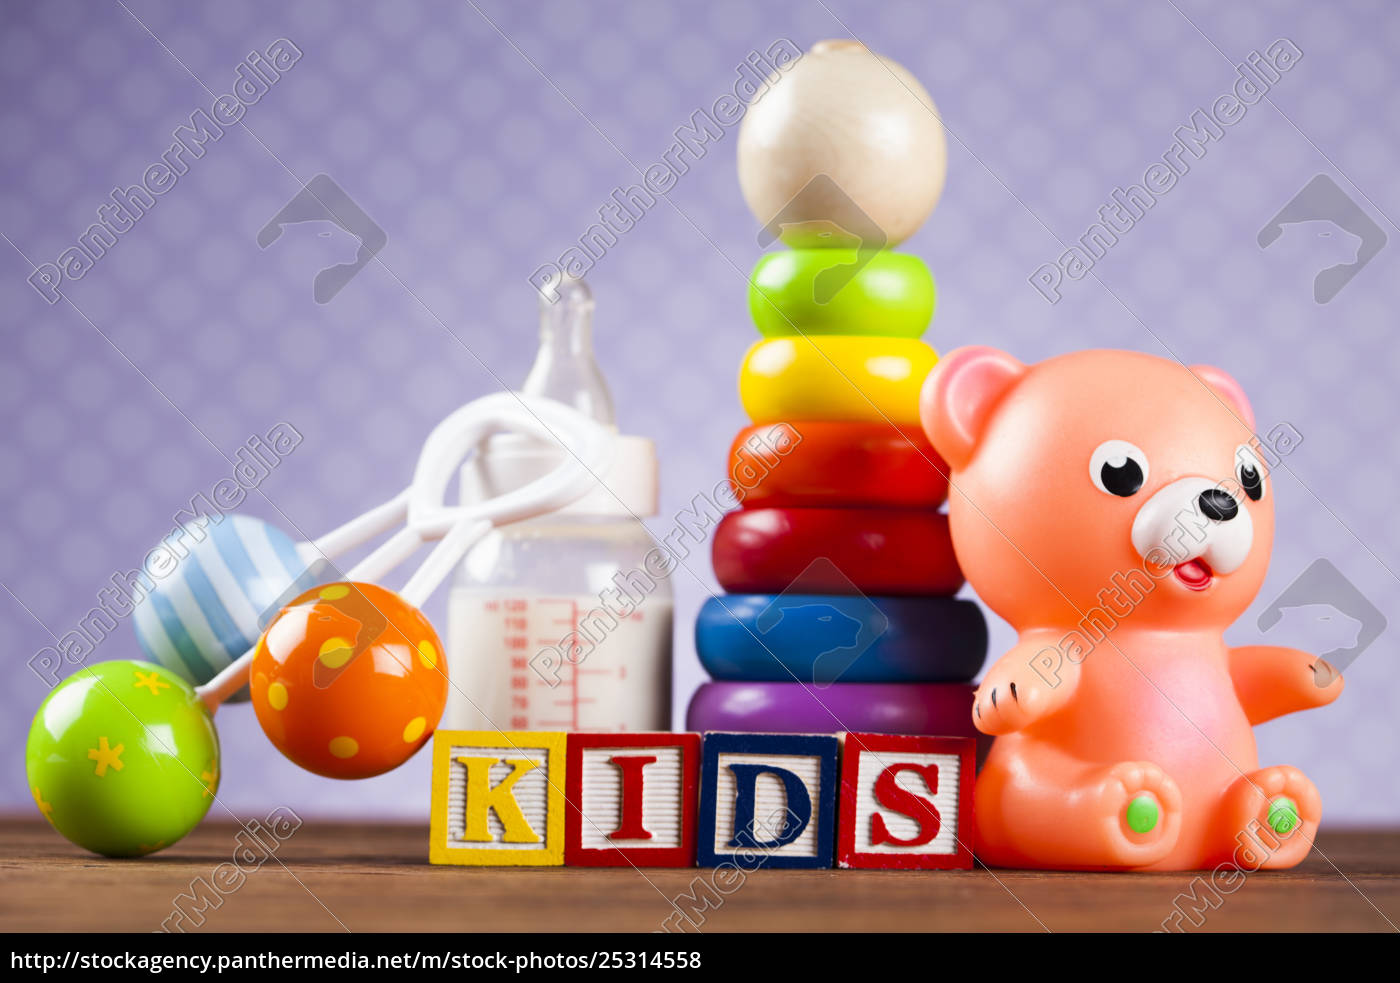 kids, world, toy, on, a, wooden - 25314558